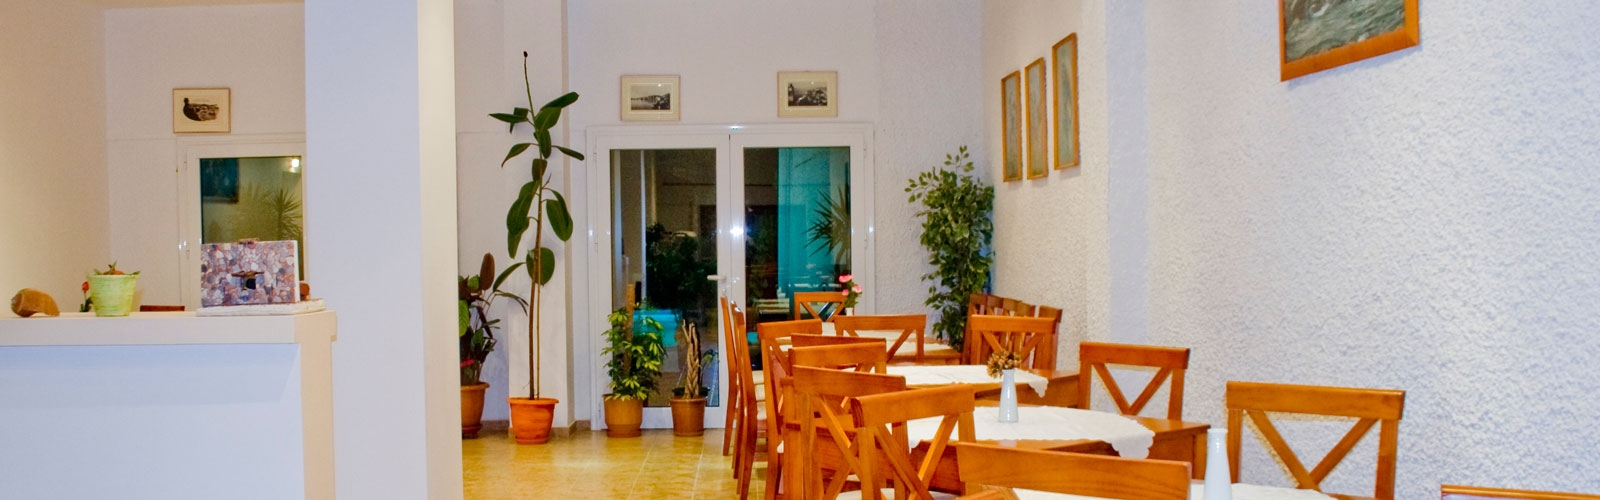 Marlton Hotel, Skiathos, island, hotels, rooms, accommodation, vacations, Greece